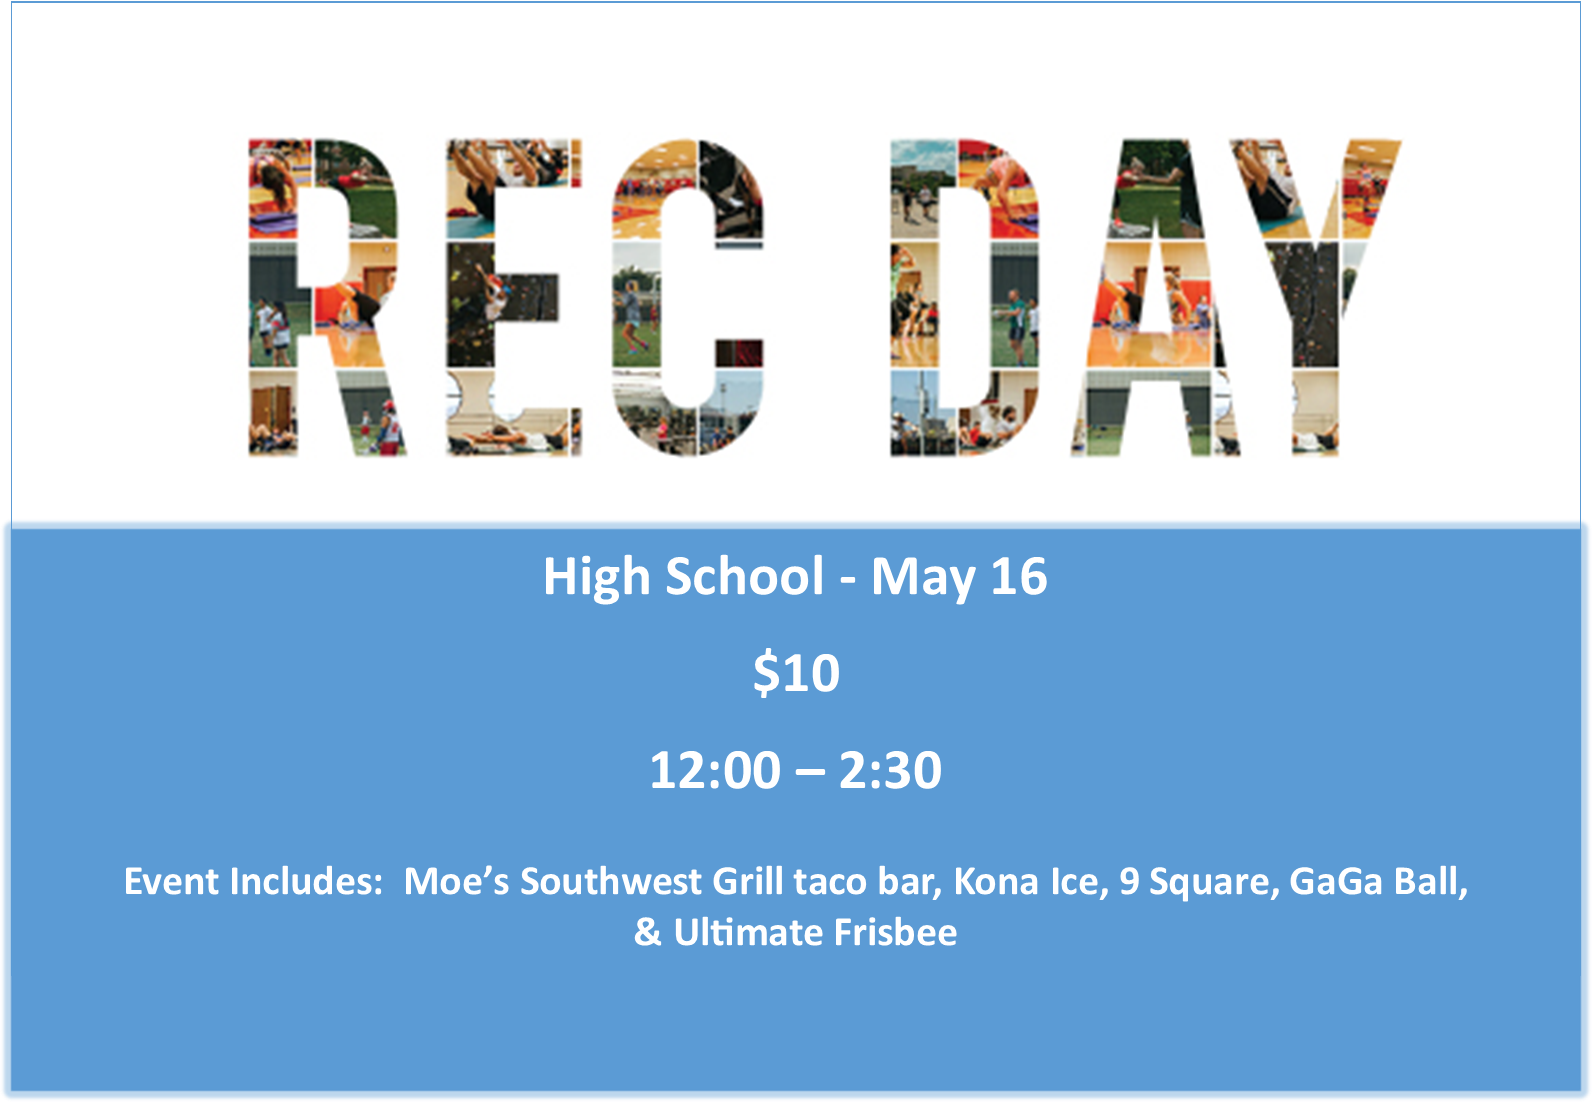 High School: GaGa Ball & 9 Square & Lunch- May 16